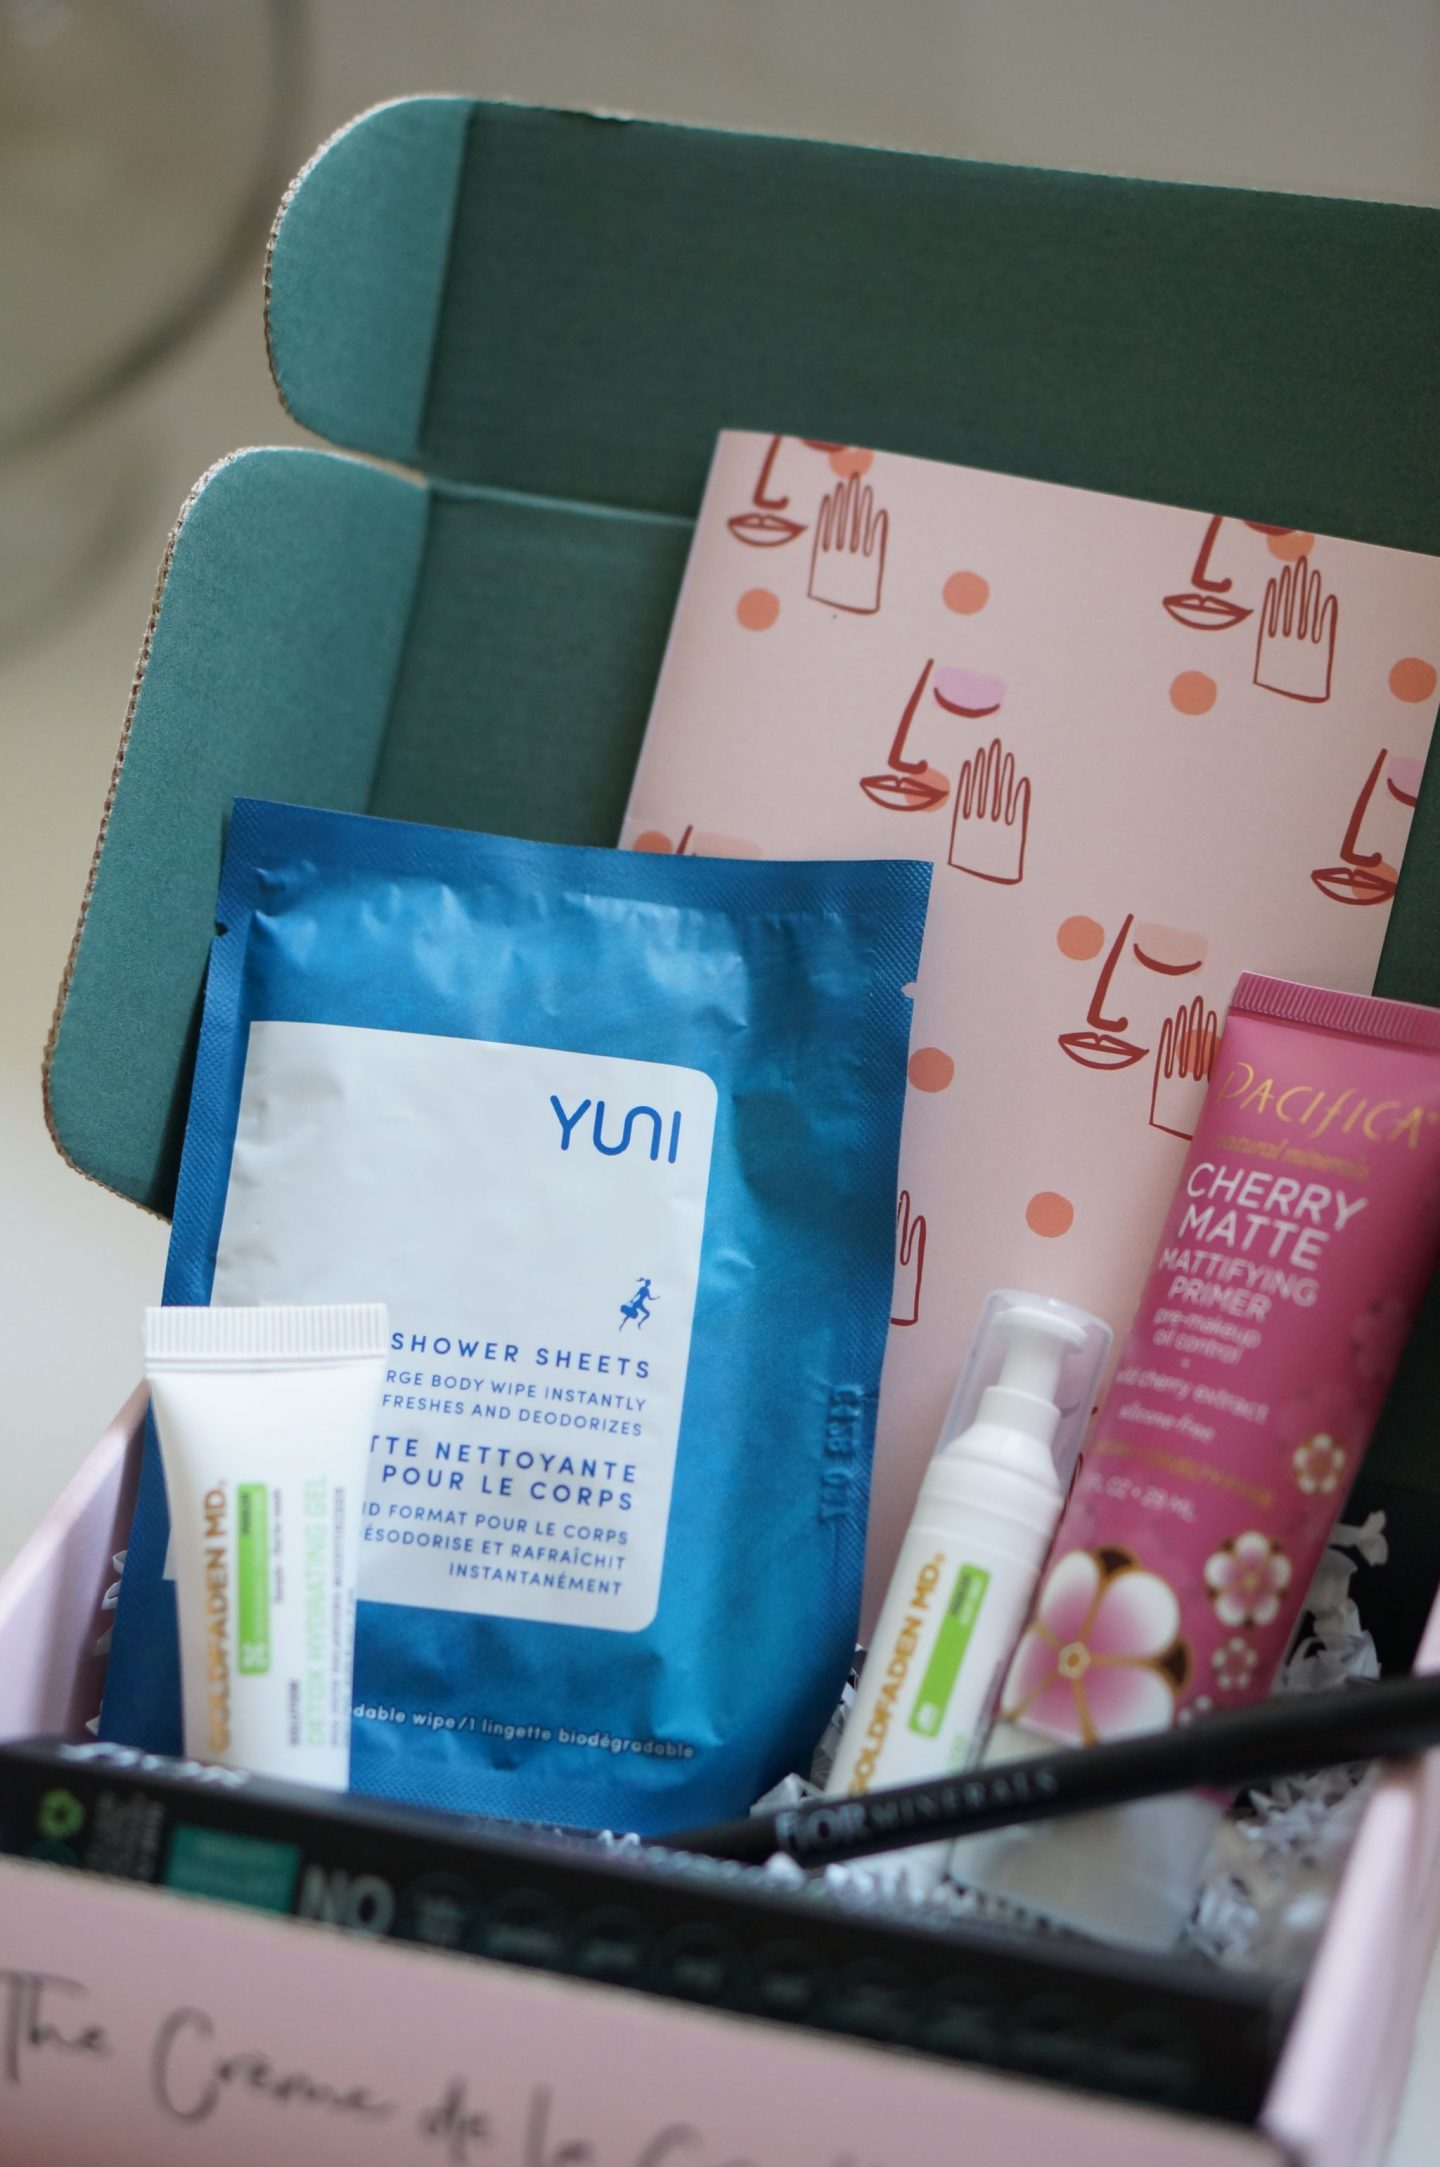 NC blogger Rebecca Lately shares her Petit Vour June 2019 box. Check it out for natural, organic, and cruelty free beauty recommendations!